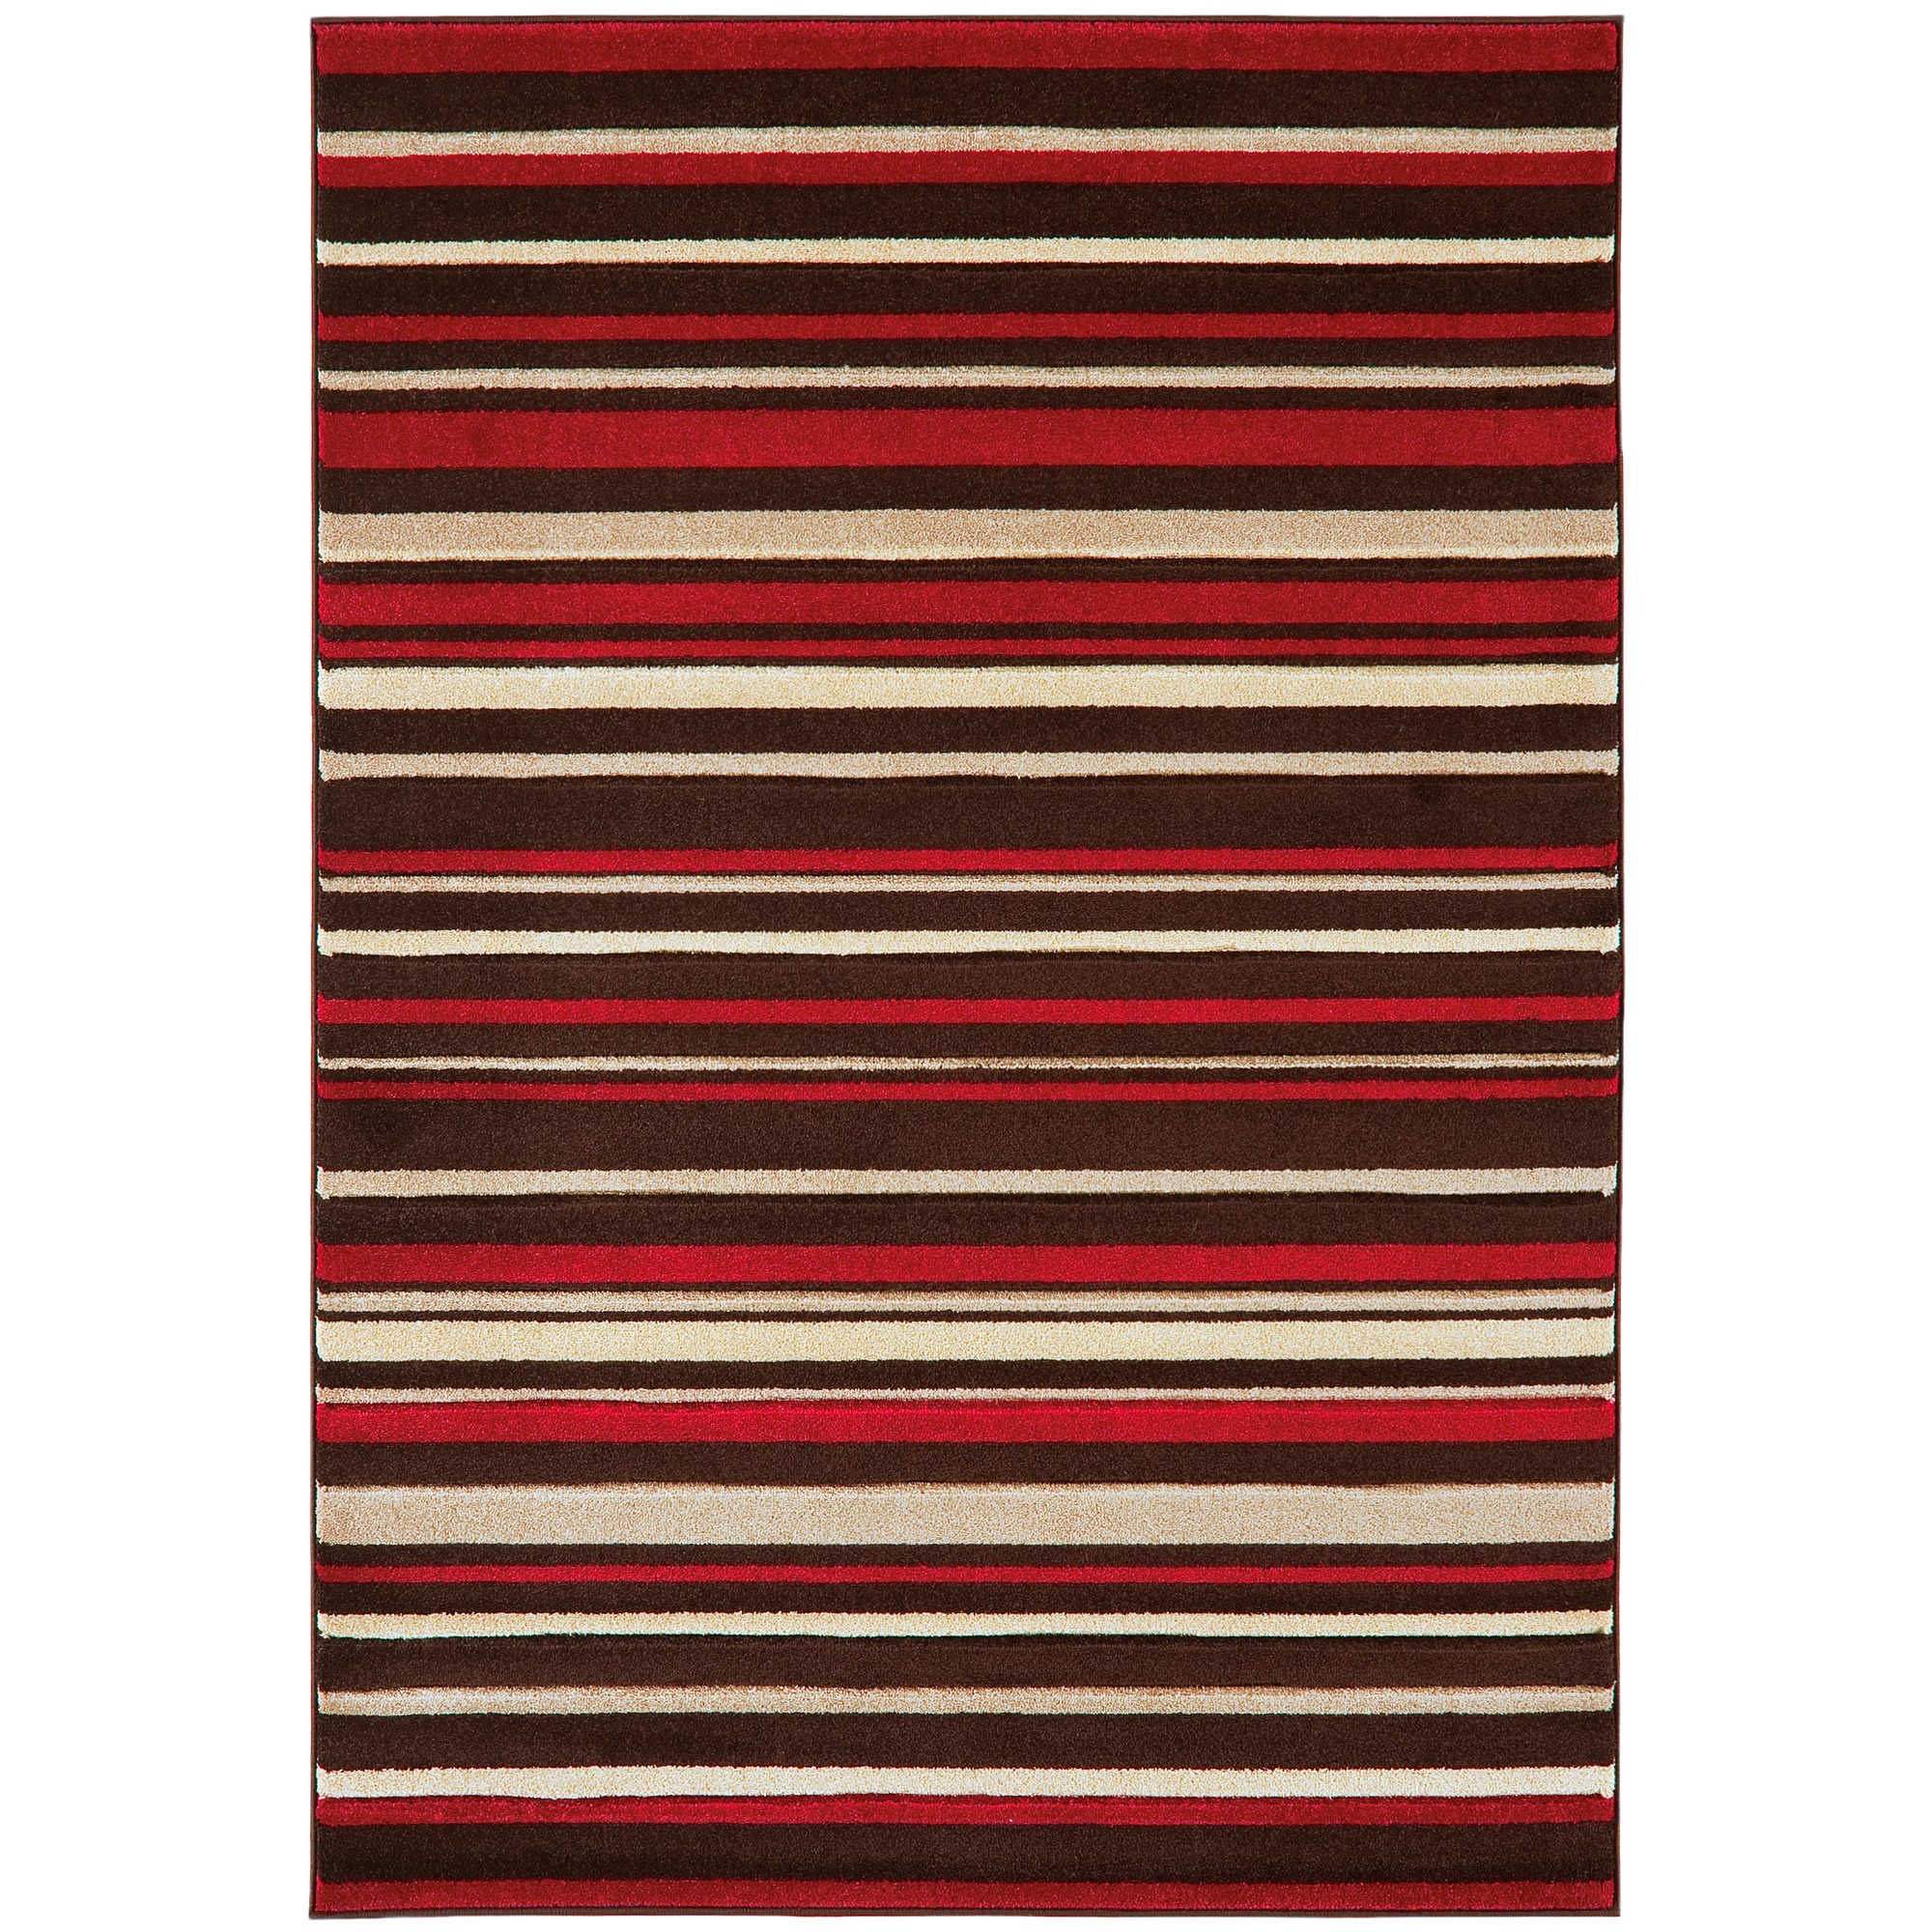 Vogue Stripes Rugs VG20 in Brown and Red